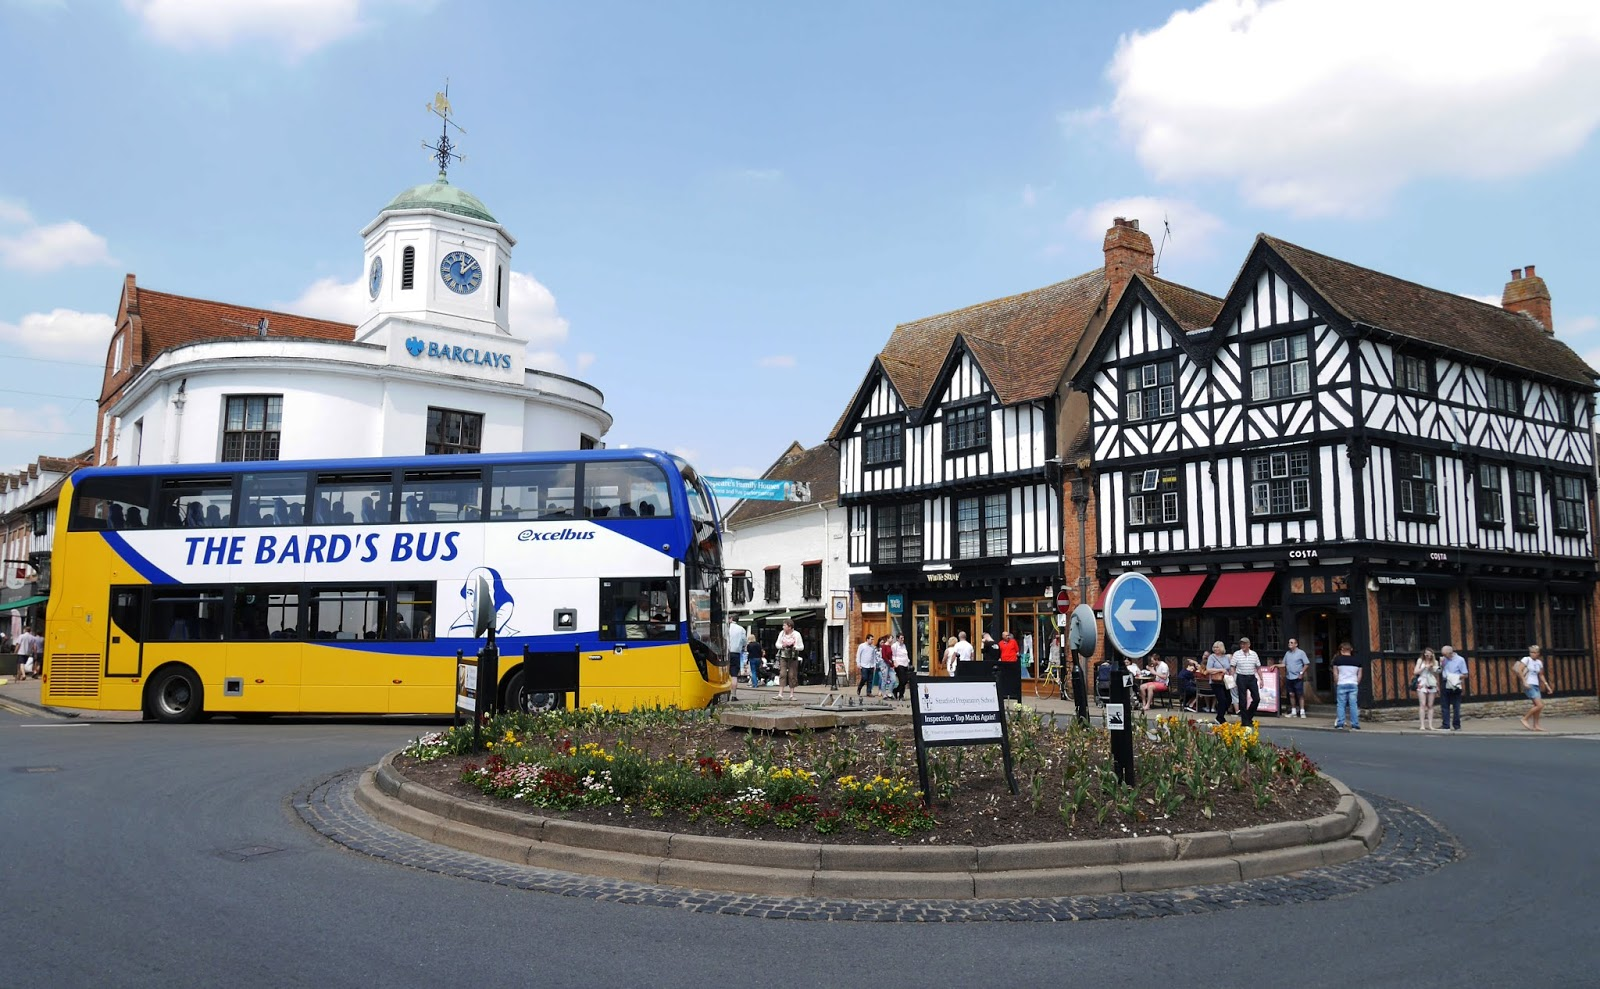 The Bard's Bus, Stratford-upon-Avon